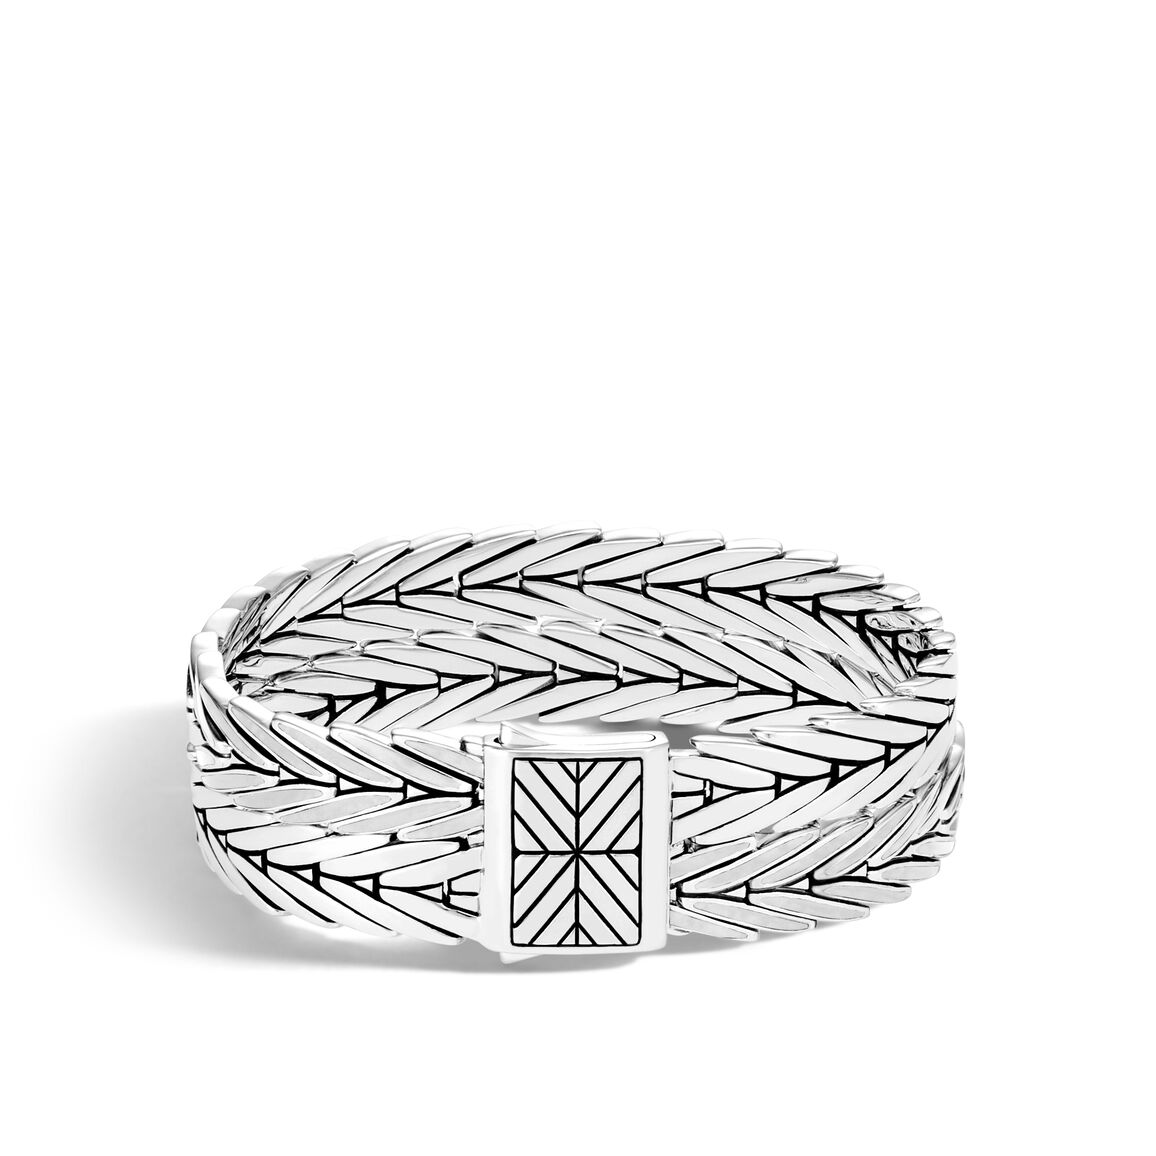 Modern Chain Double Row Bracelet in Silver and Enamel